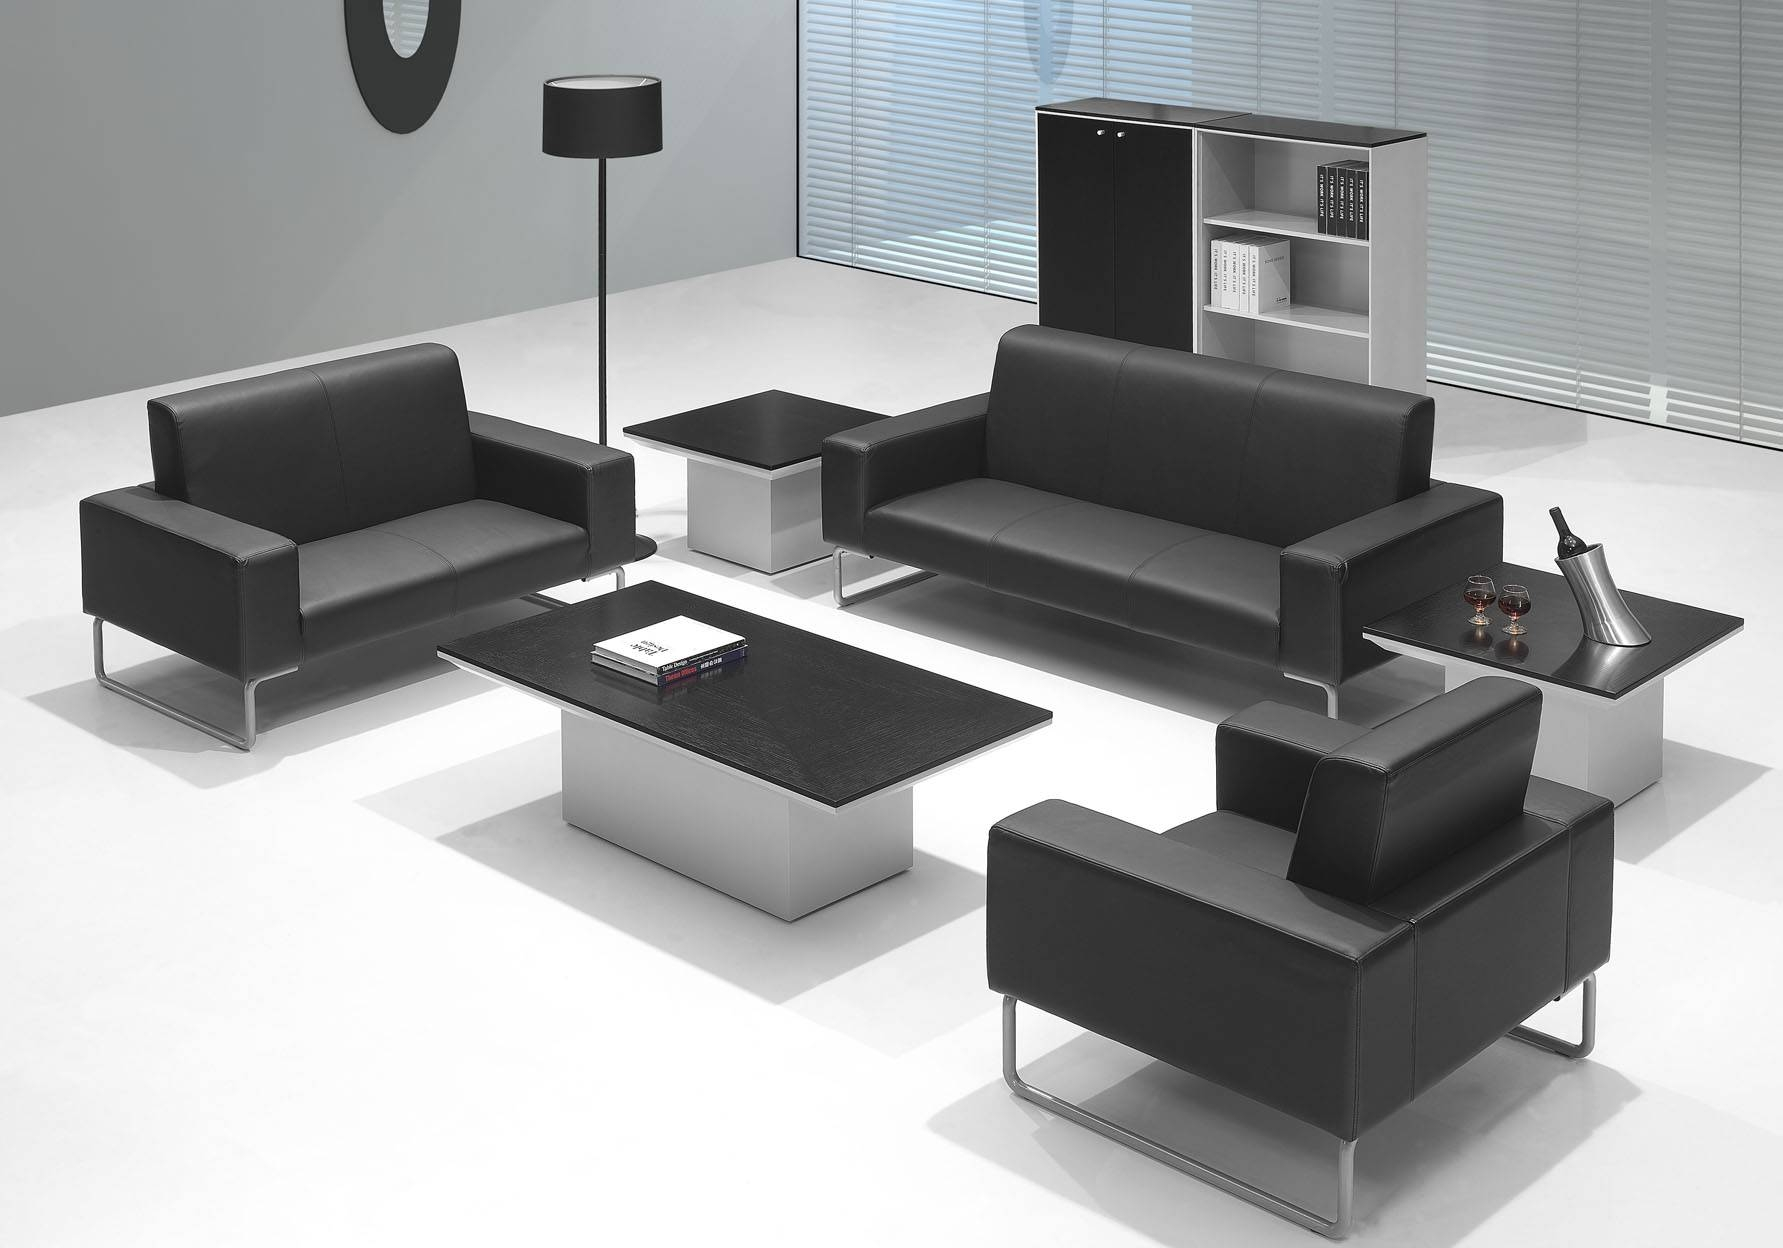 Office Furniture Sofa Design | Sofas Decoration Within Office Sofas And Chairs (View 4 of 15)